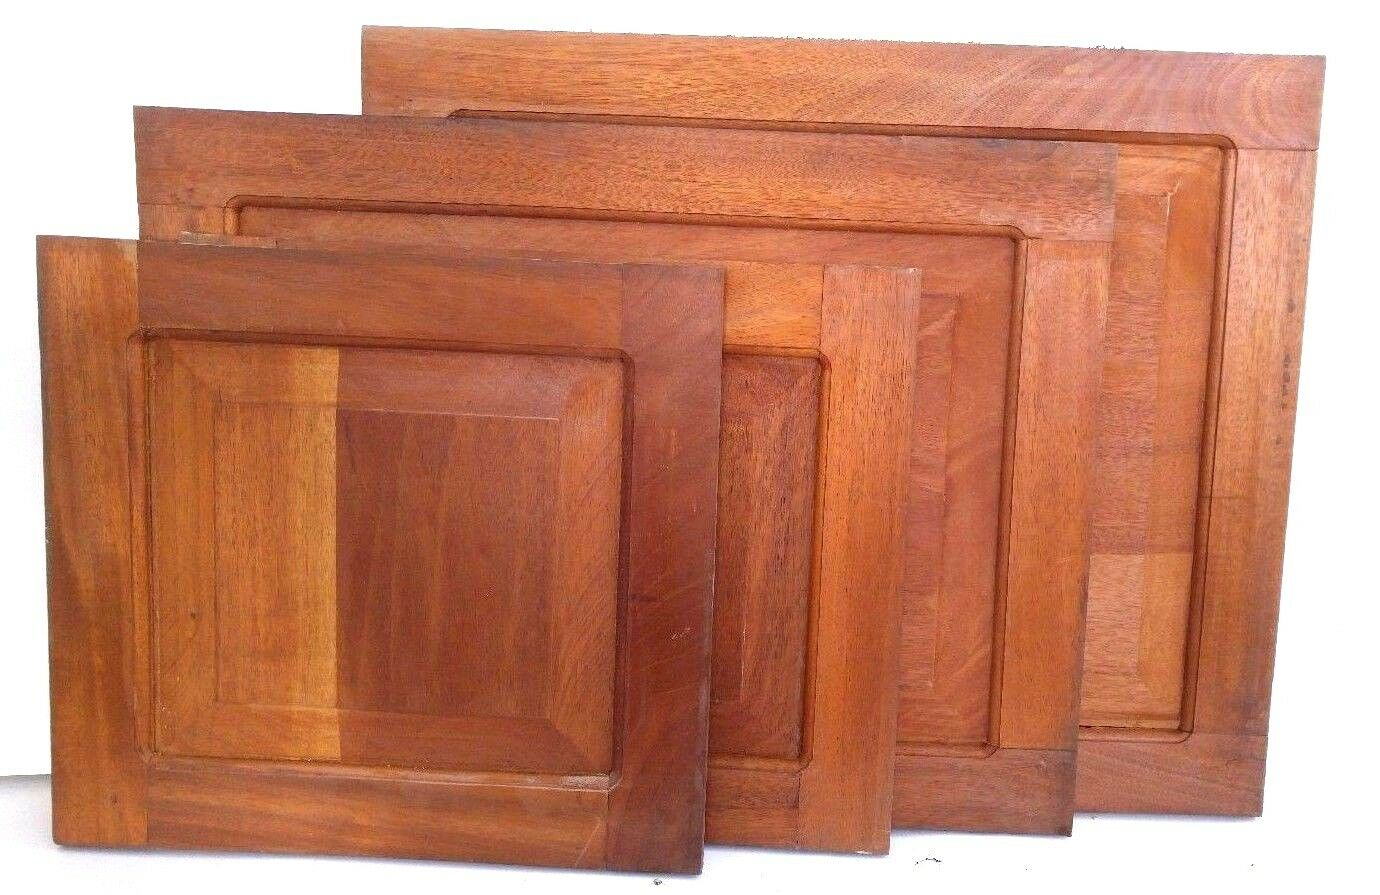 2 RAISED PANEL KITCHEN CABINET DOOR 24 x12  unfinished SOLID WOOD Cedar Peruvian